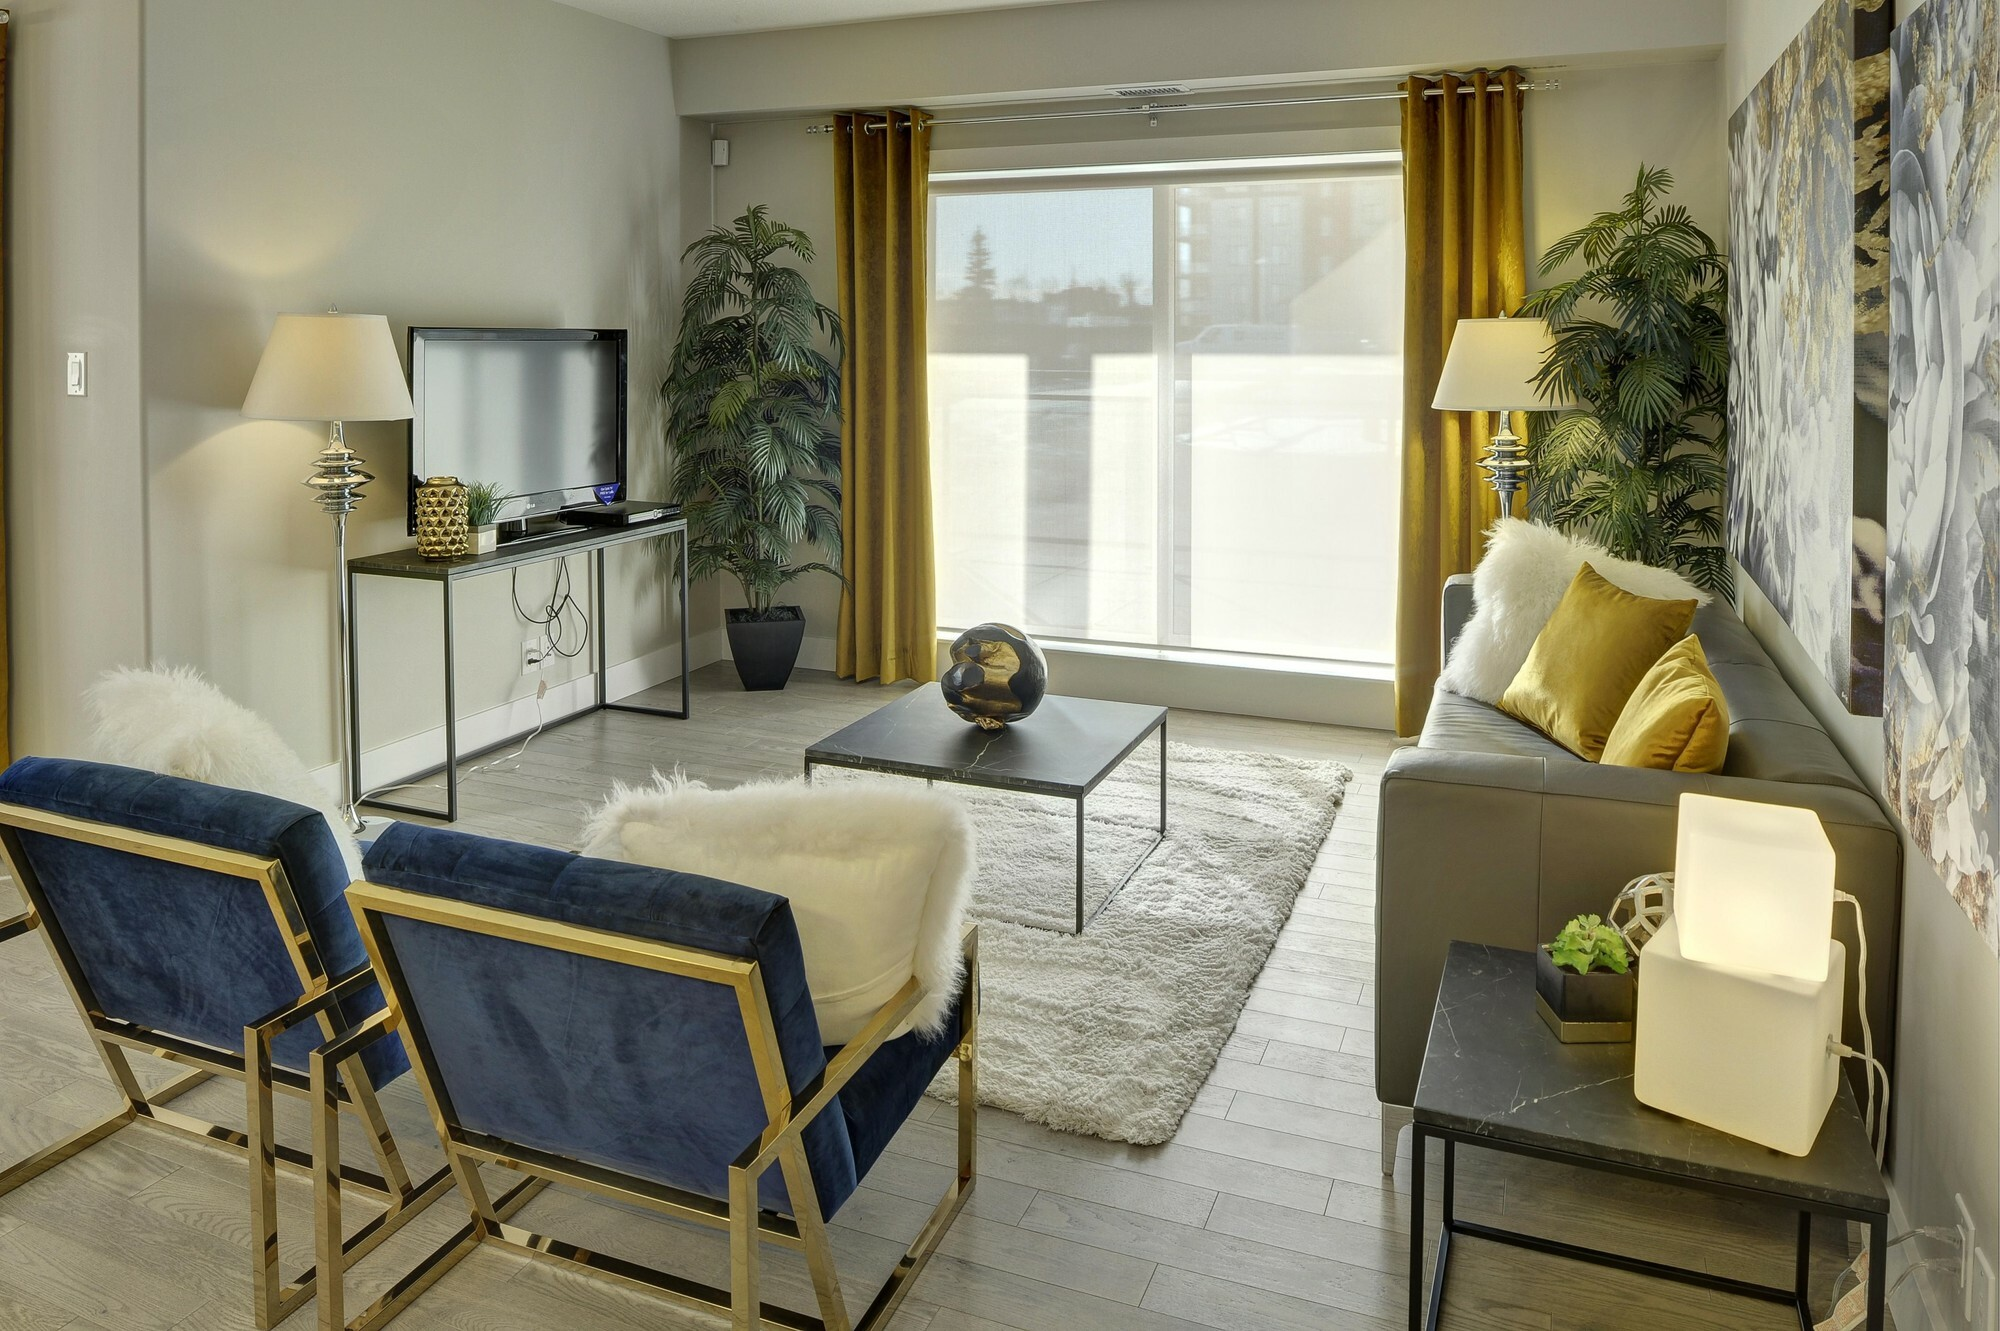 unit details for e scapes southwest edmonton unit 227 11074 | 1548371280 2000w 2000h 11074ellerslierdsw13207